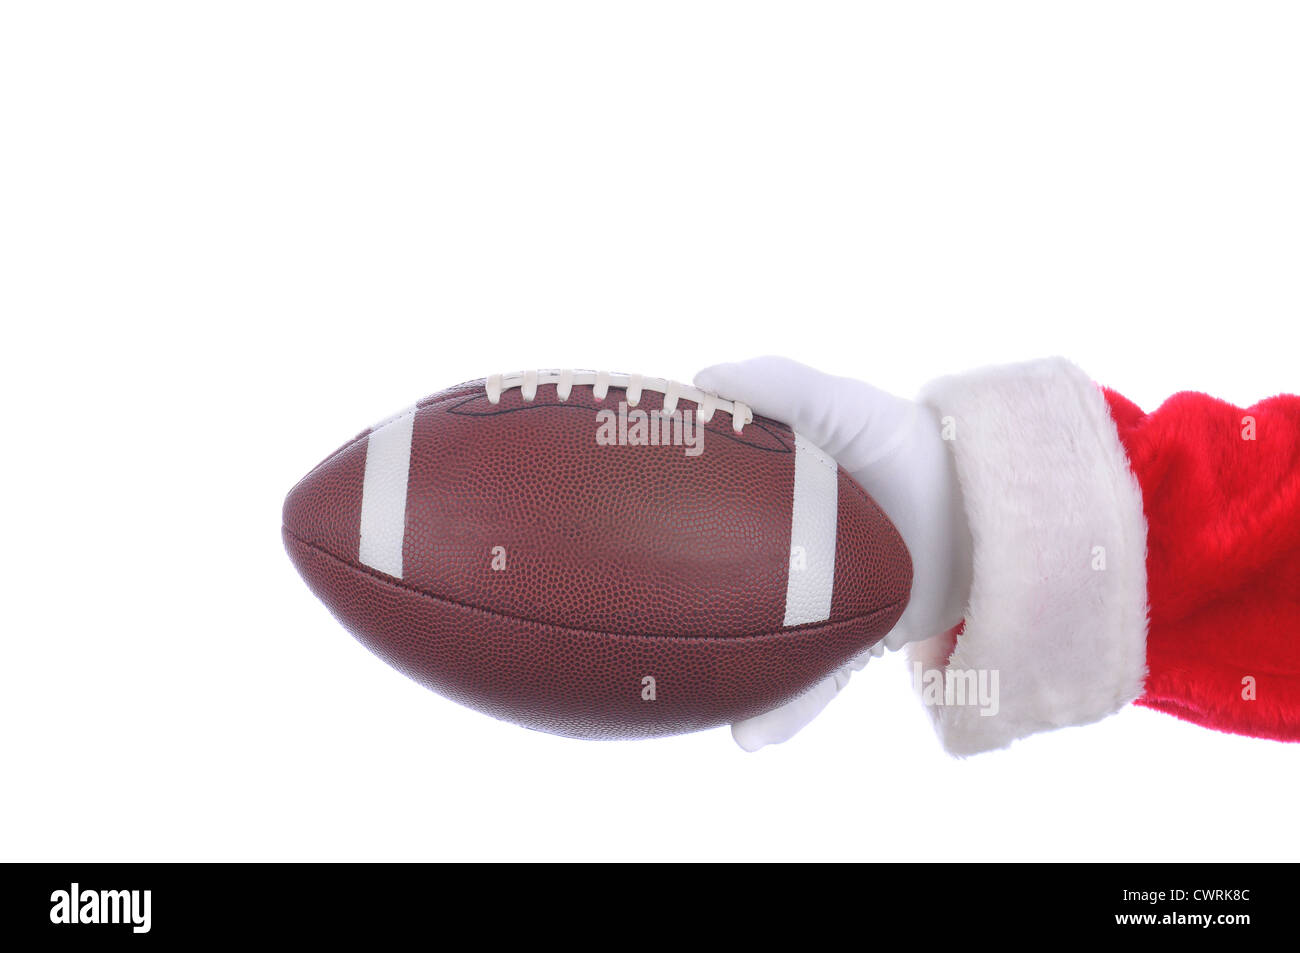 Santa Claus outstretched arm with an american football ready to hand off. Horizontal format over a white background. - Stock Image